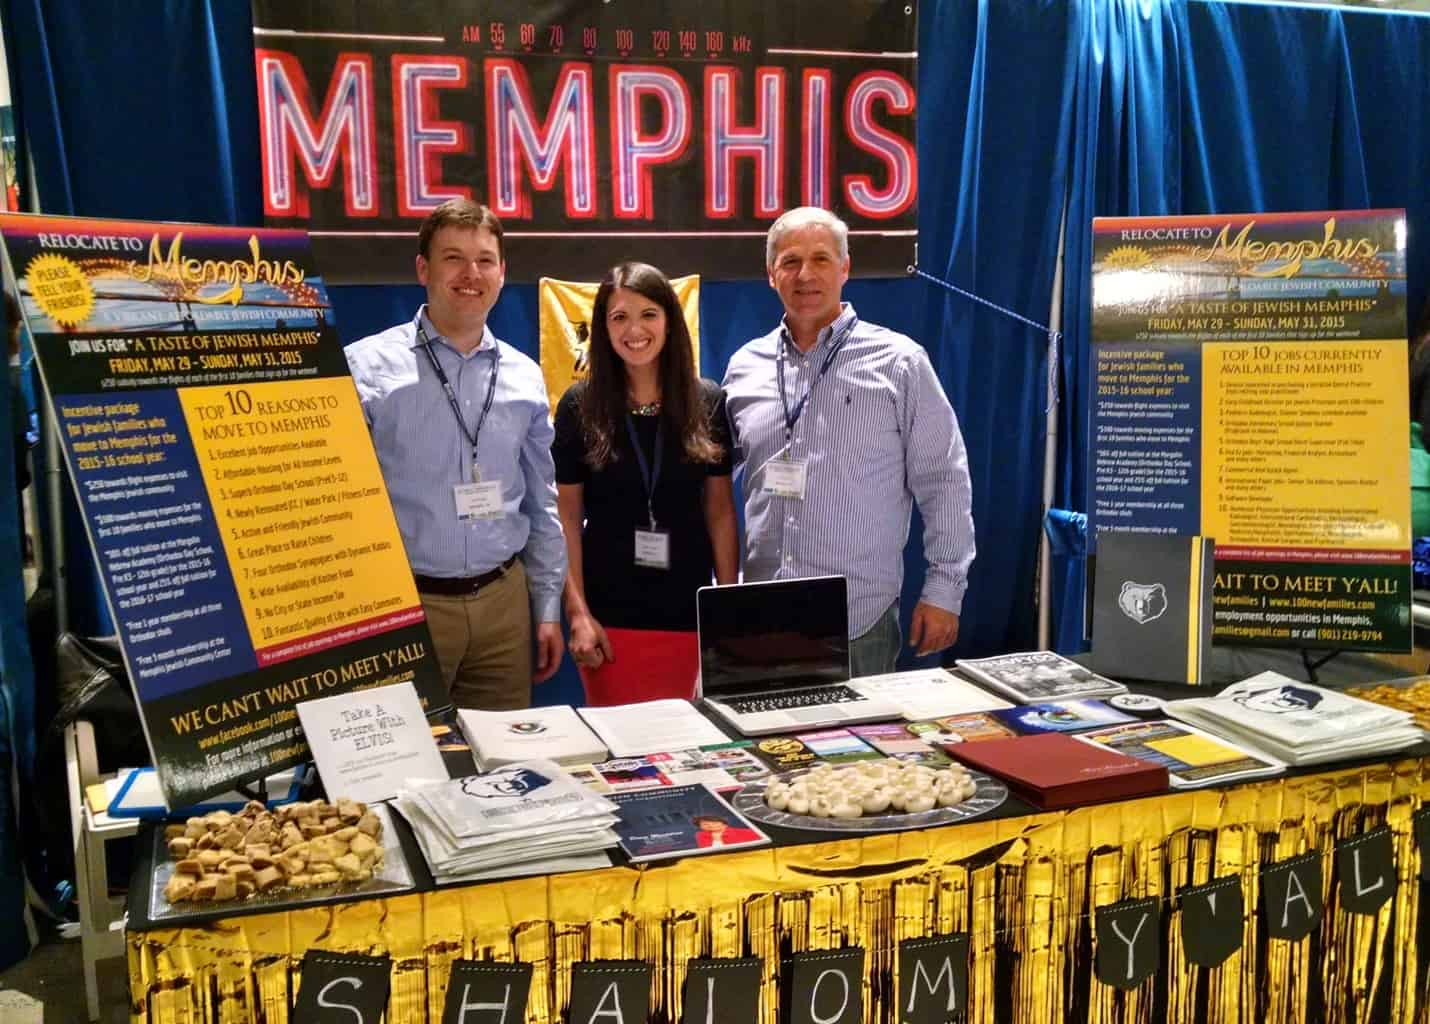 watch-celebrate-sunny-memphis-with-purim-video-from-memphis-recruitment-committee